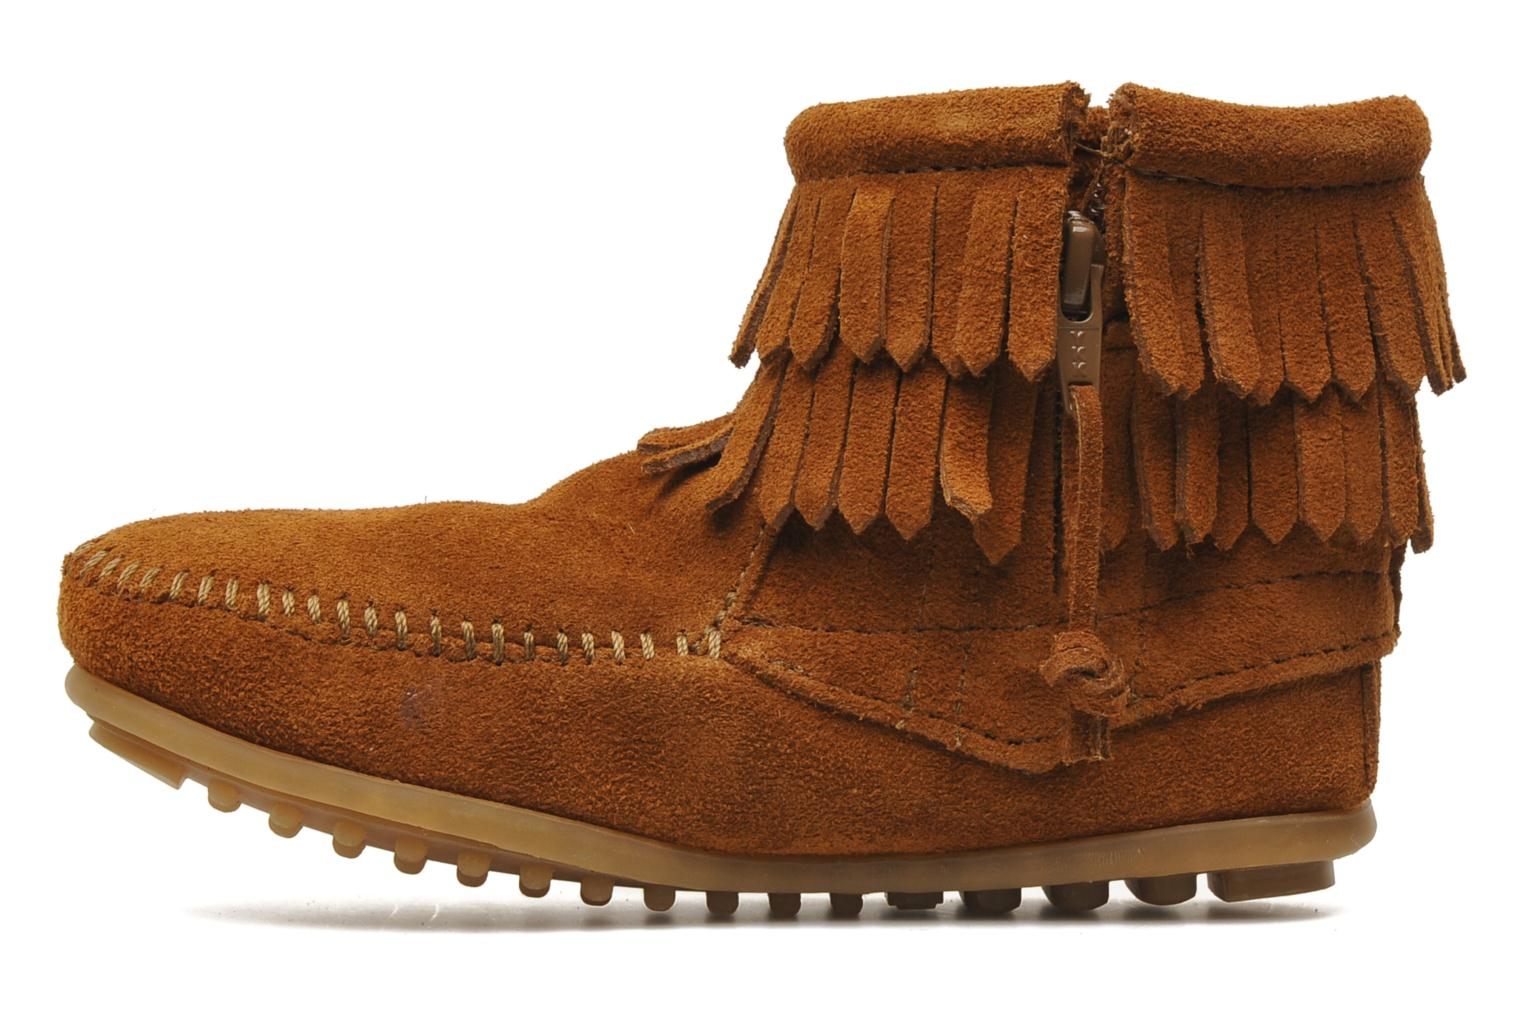 Bottines et boots Minnetonka Double Fringe bootie G Marron vue face